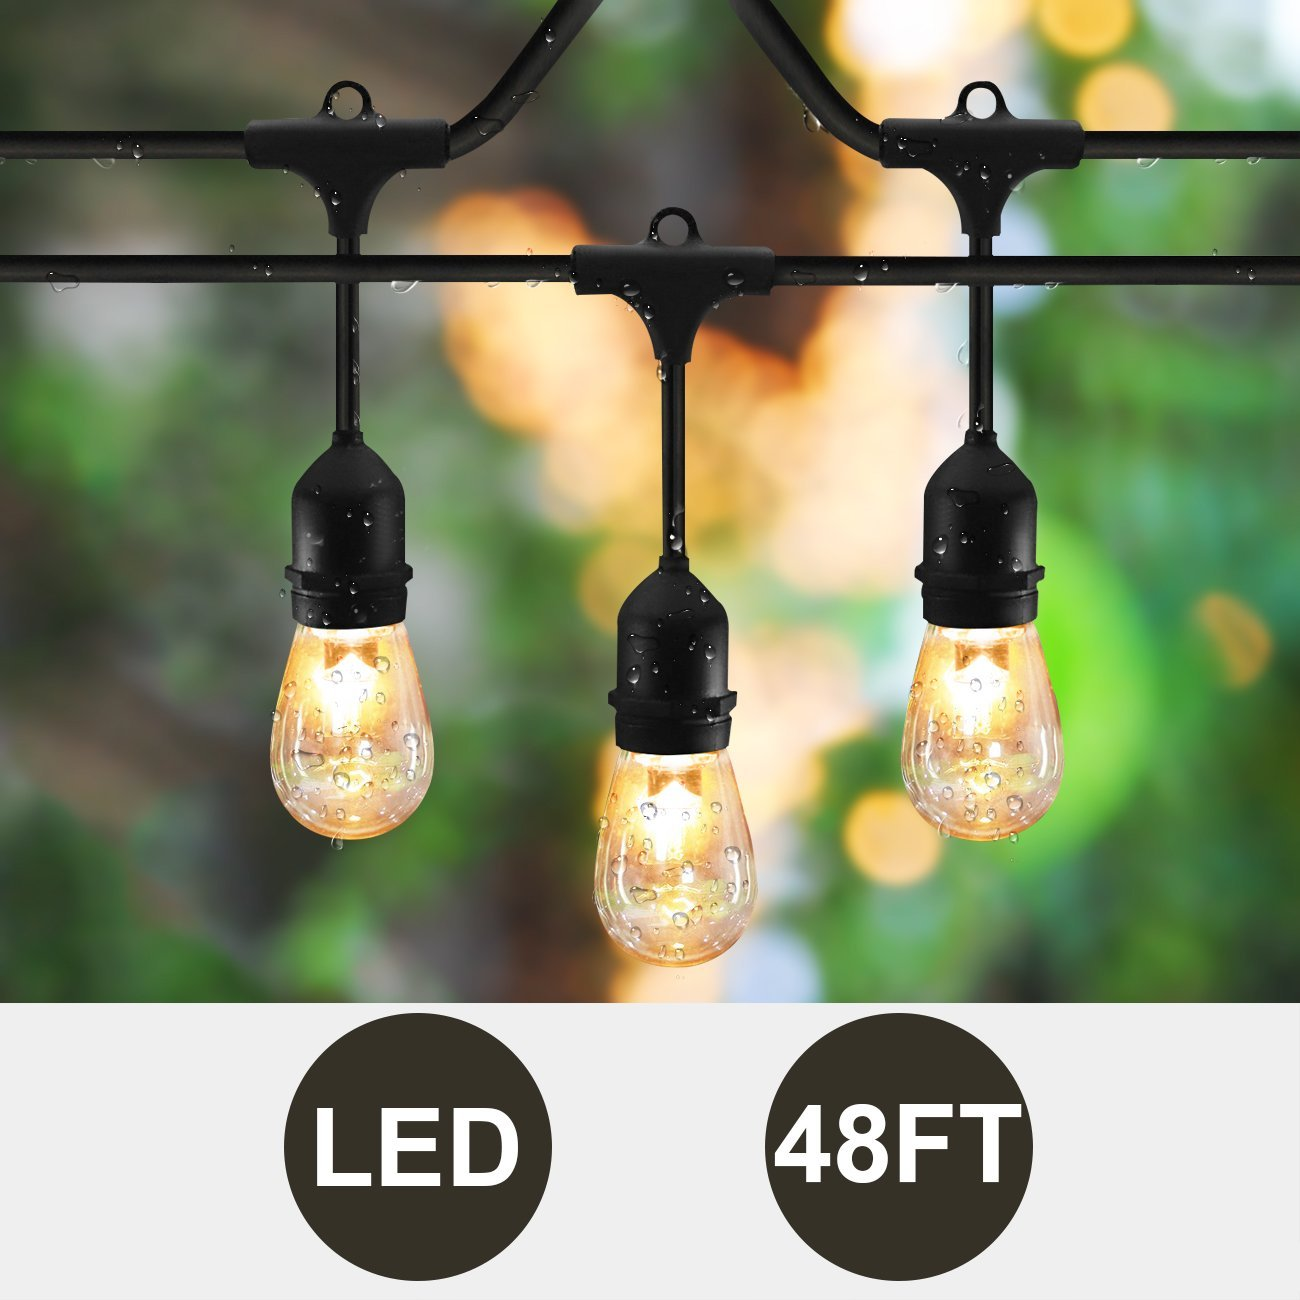 SUNTHIN 48ft LED String of Lights with 15 x E26 Sockets and Hanging Loops, 18 x 0.9 Watt S14 Bulbs (3 Spares) -Indoor/Outdoor string lights, Commercial String Lights, Patio Lights, Light Strings